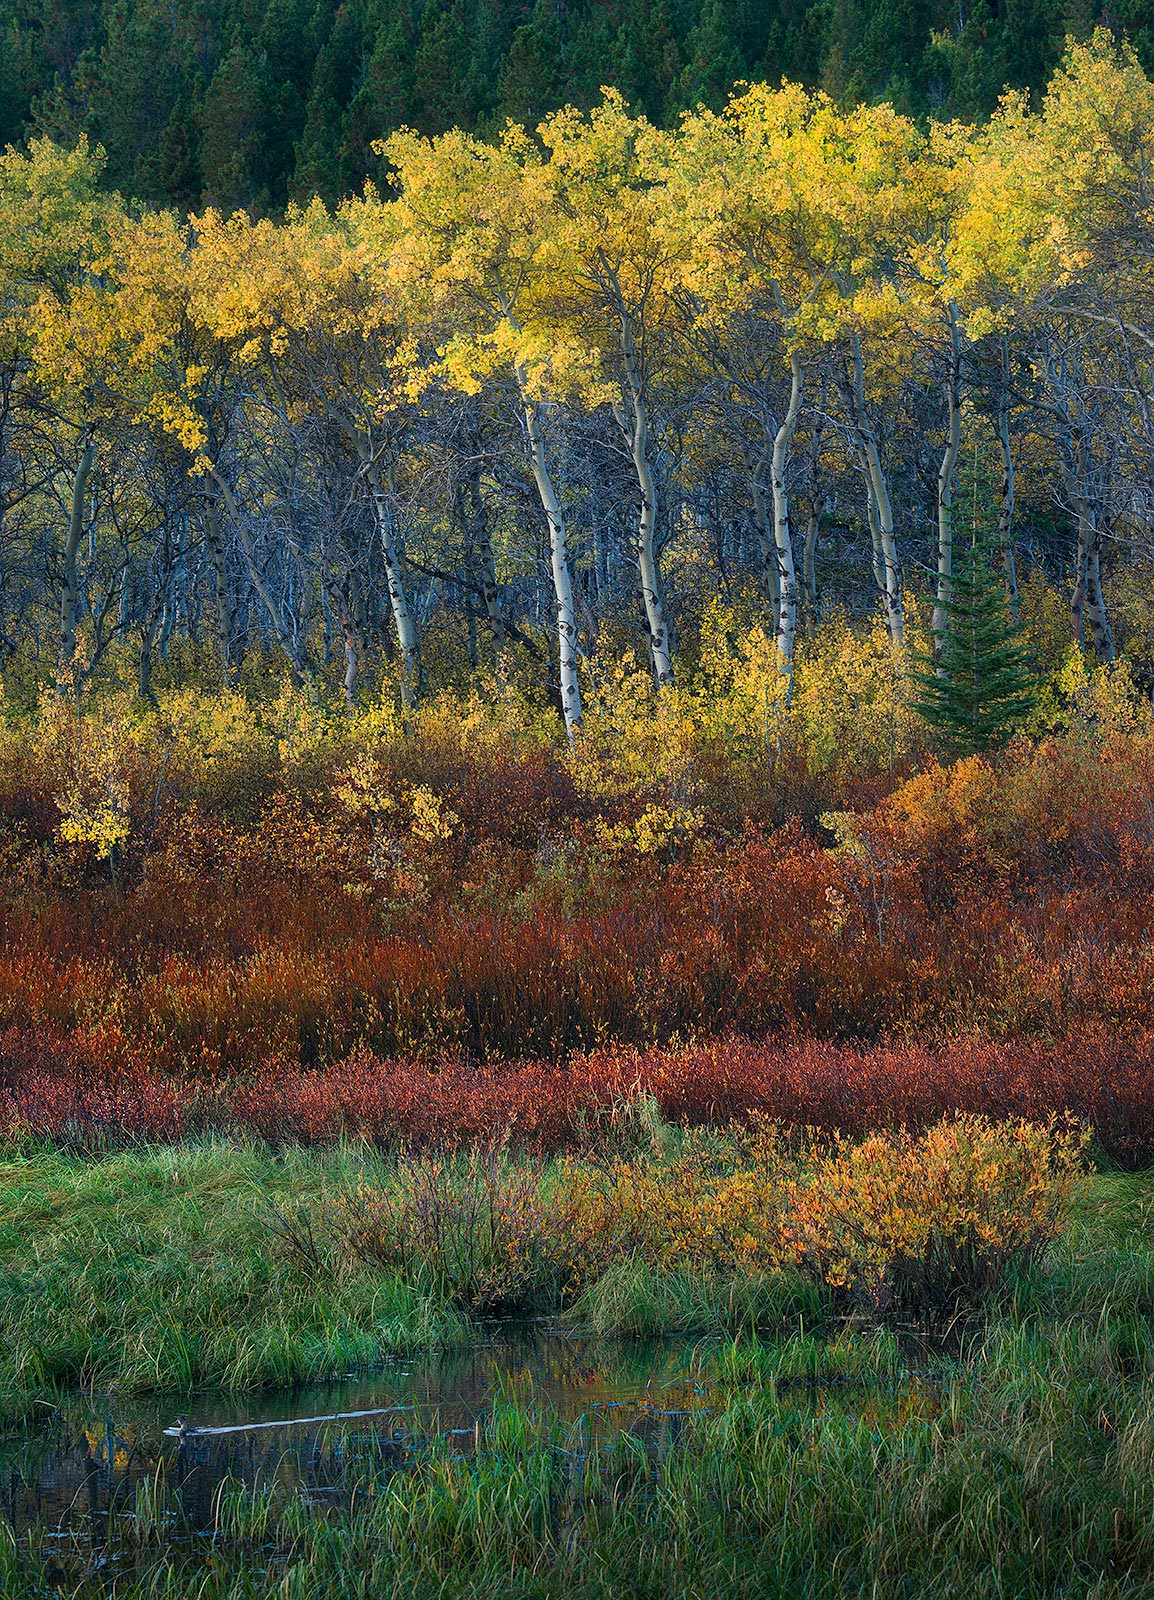 Duck Fall Montana Natural Forest Meadow, photo